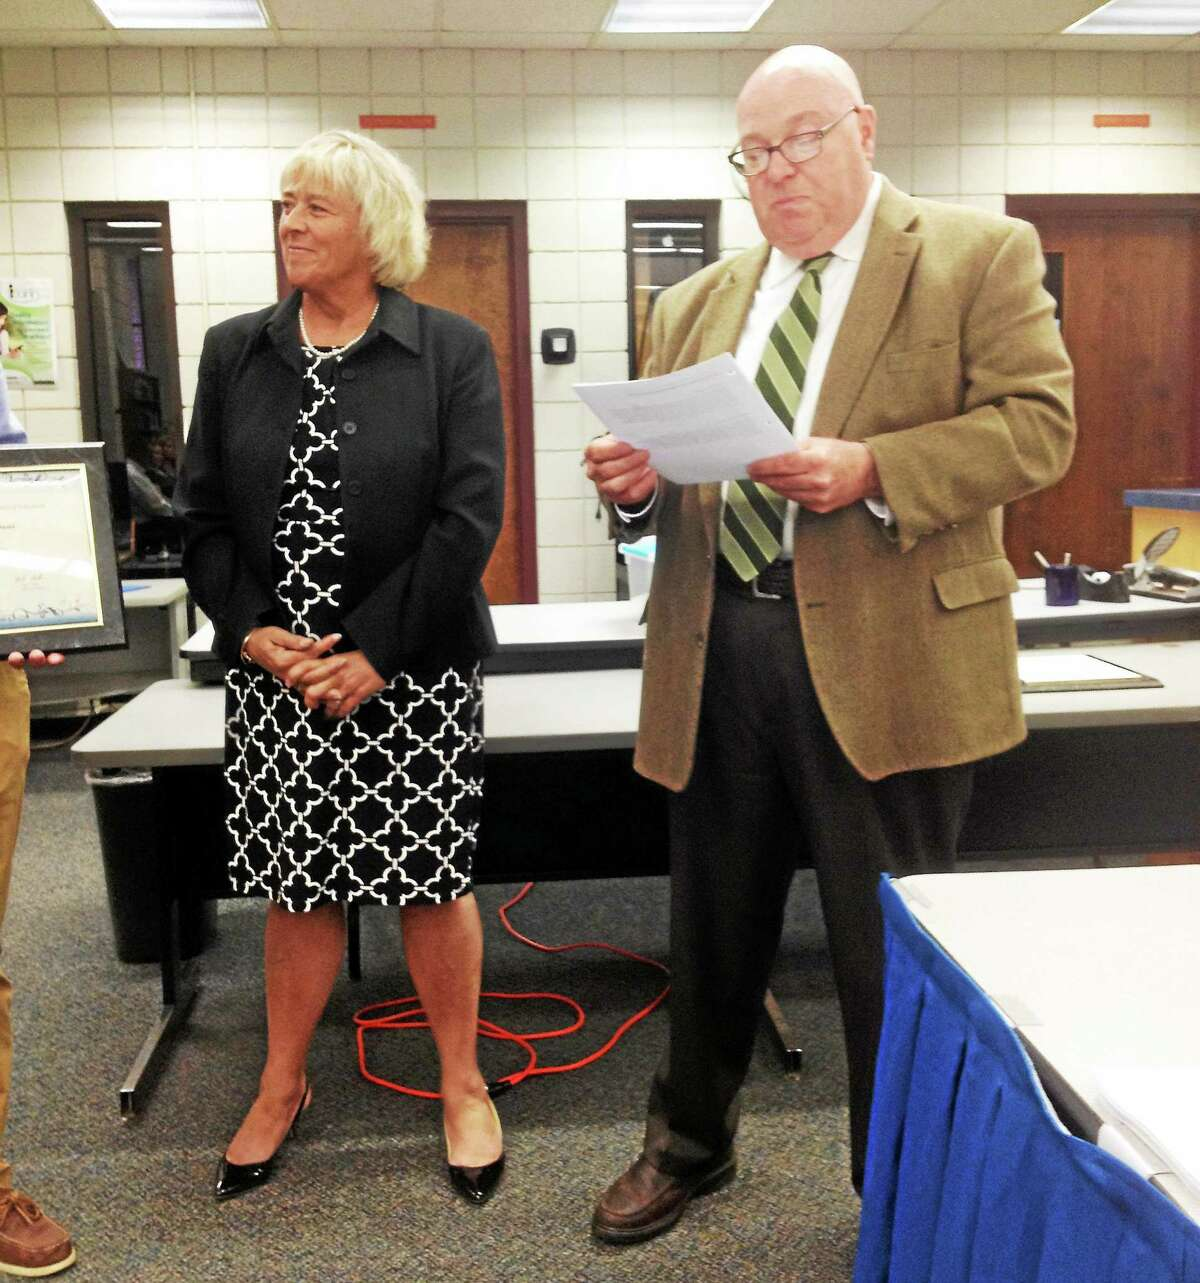 East Hampton High School Superintendent of Schools Diane Dugas, who stepped down last week, and Board of Education Chair Ken Barber are shown at a recent meeting.